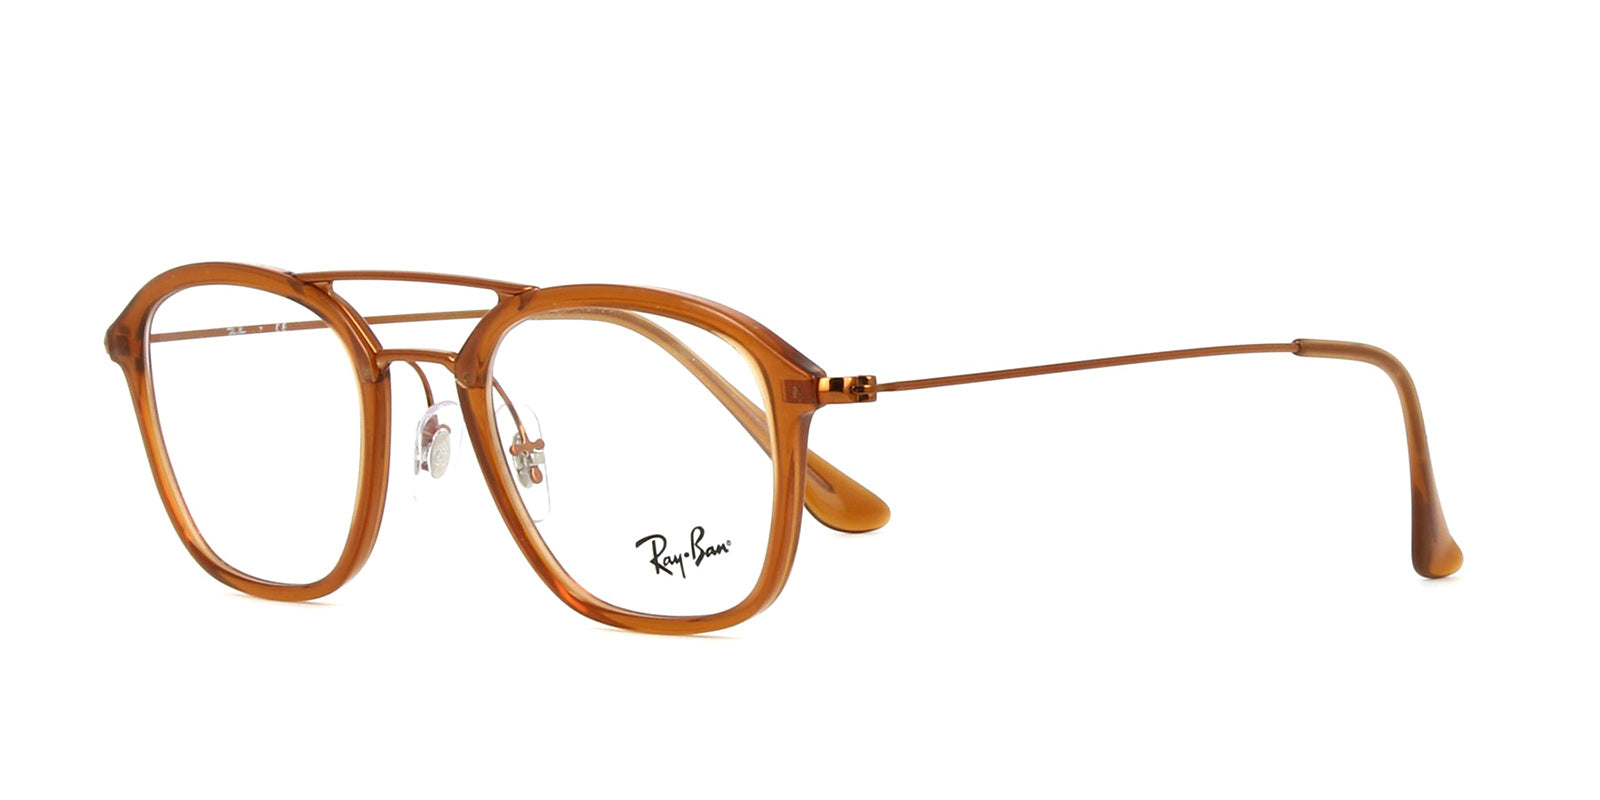 Ray Ban Eyeglasses RB7098 5634 Rx-ABLE